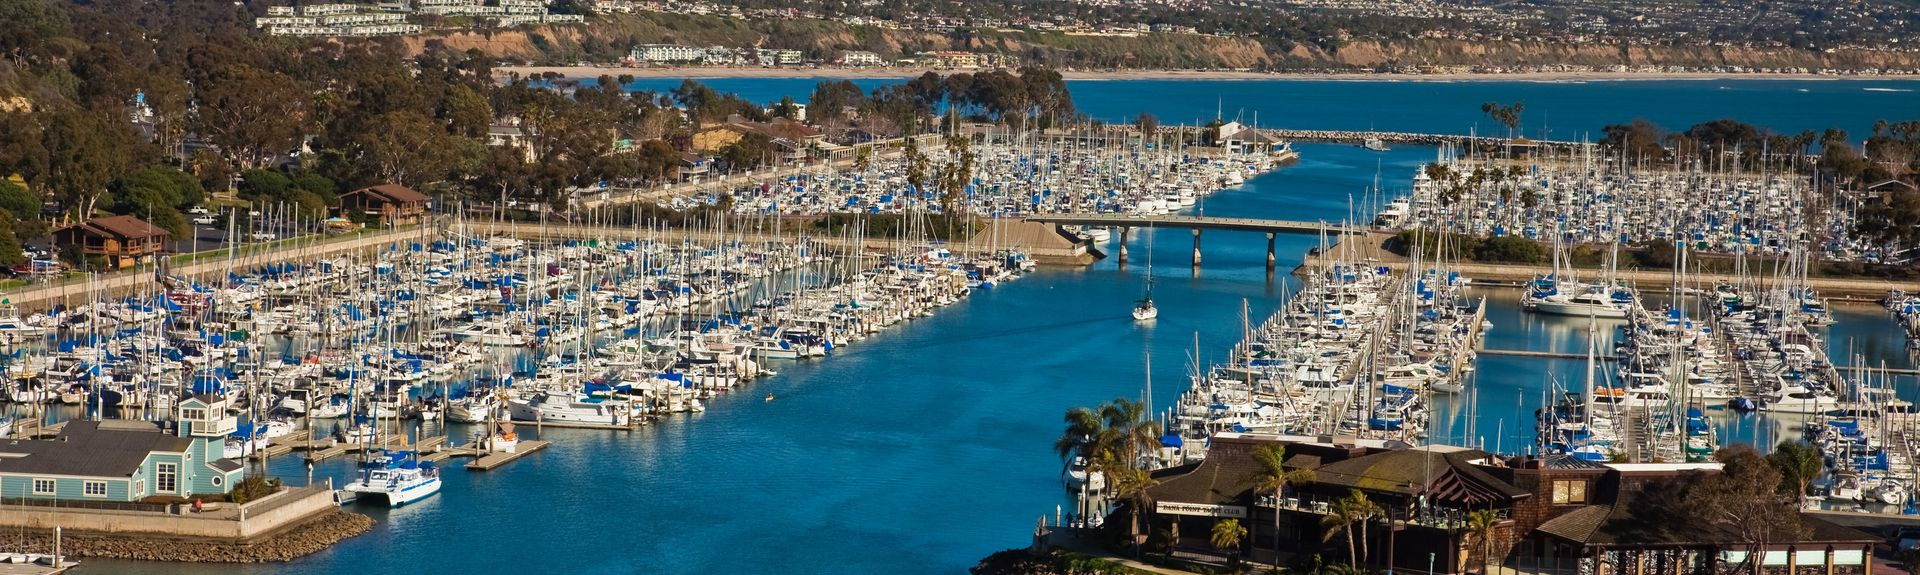 Dana Point, Californien, USA